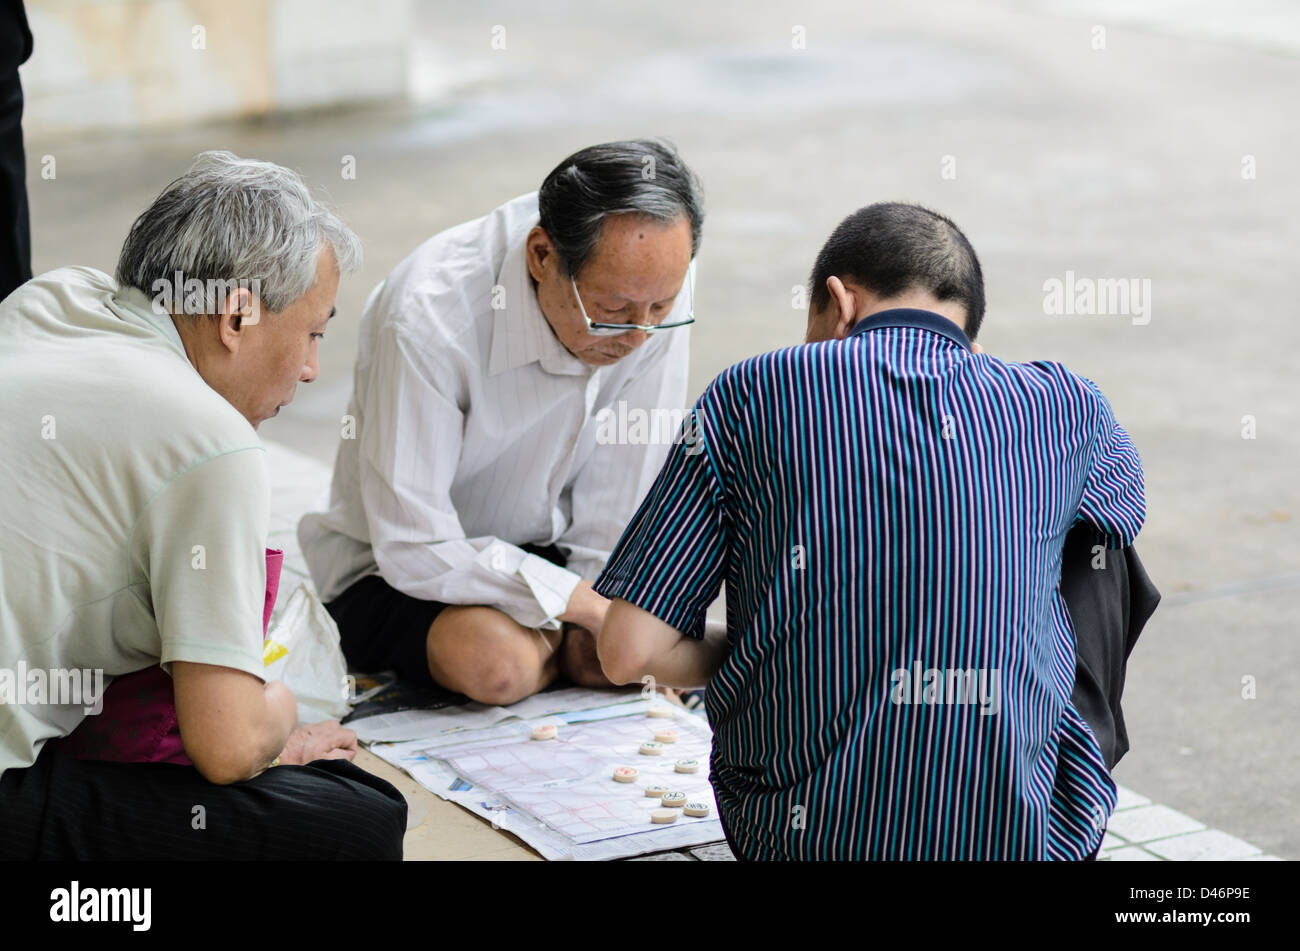 Elderly Chinese men playing an ancient form of Chinese chess, xiangqi, in a public park during their free time - Stock Image